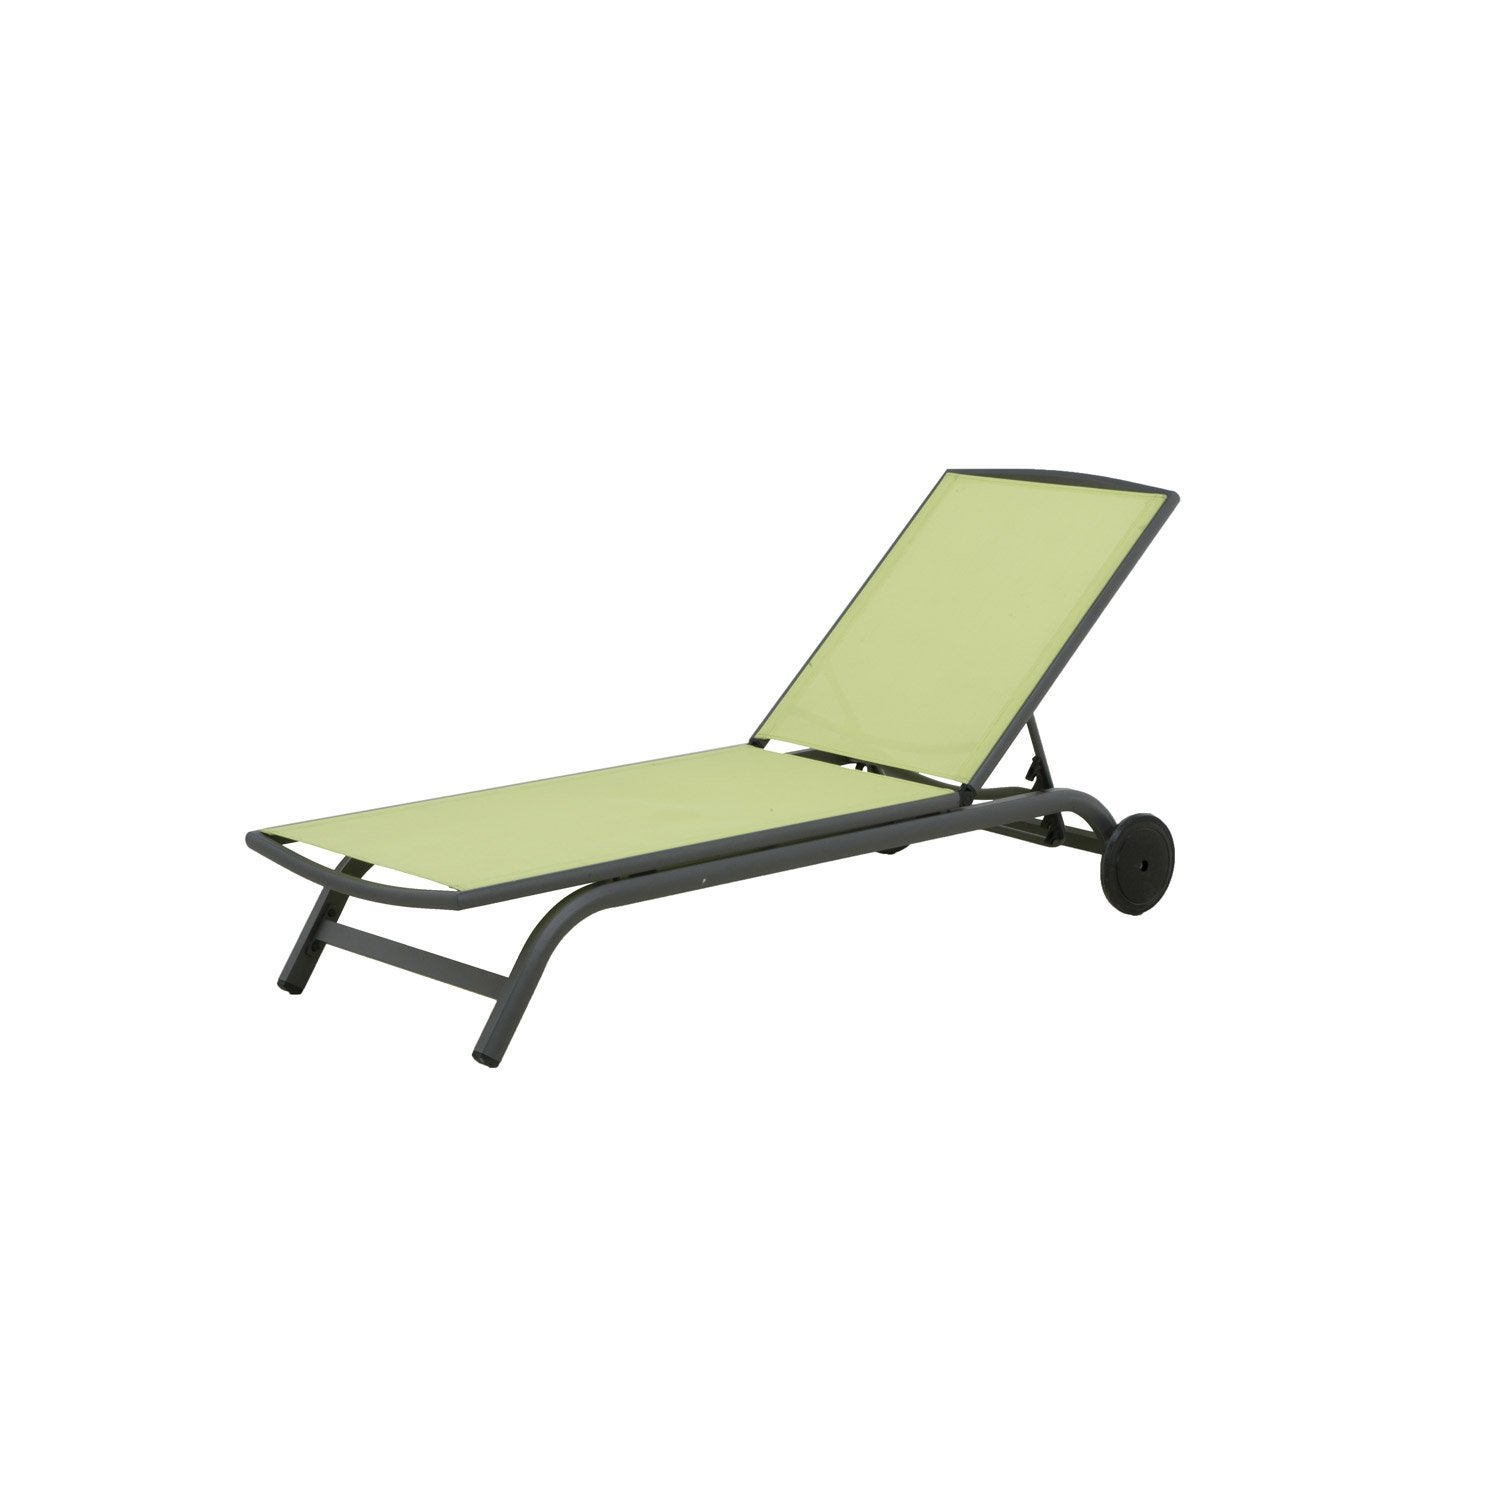 Transat jardin carrefour for Chaise longue de jardin carrefour